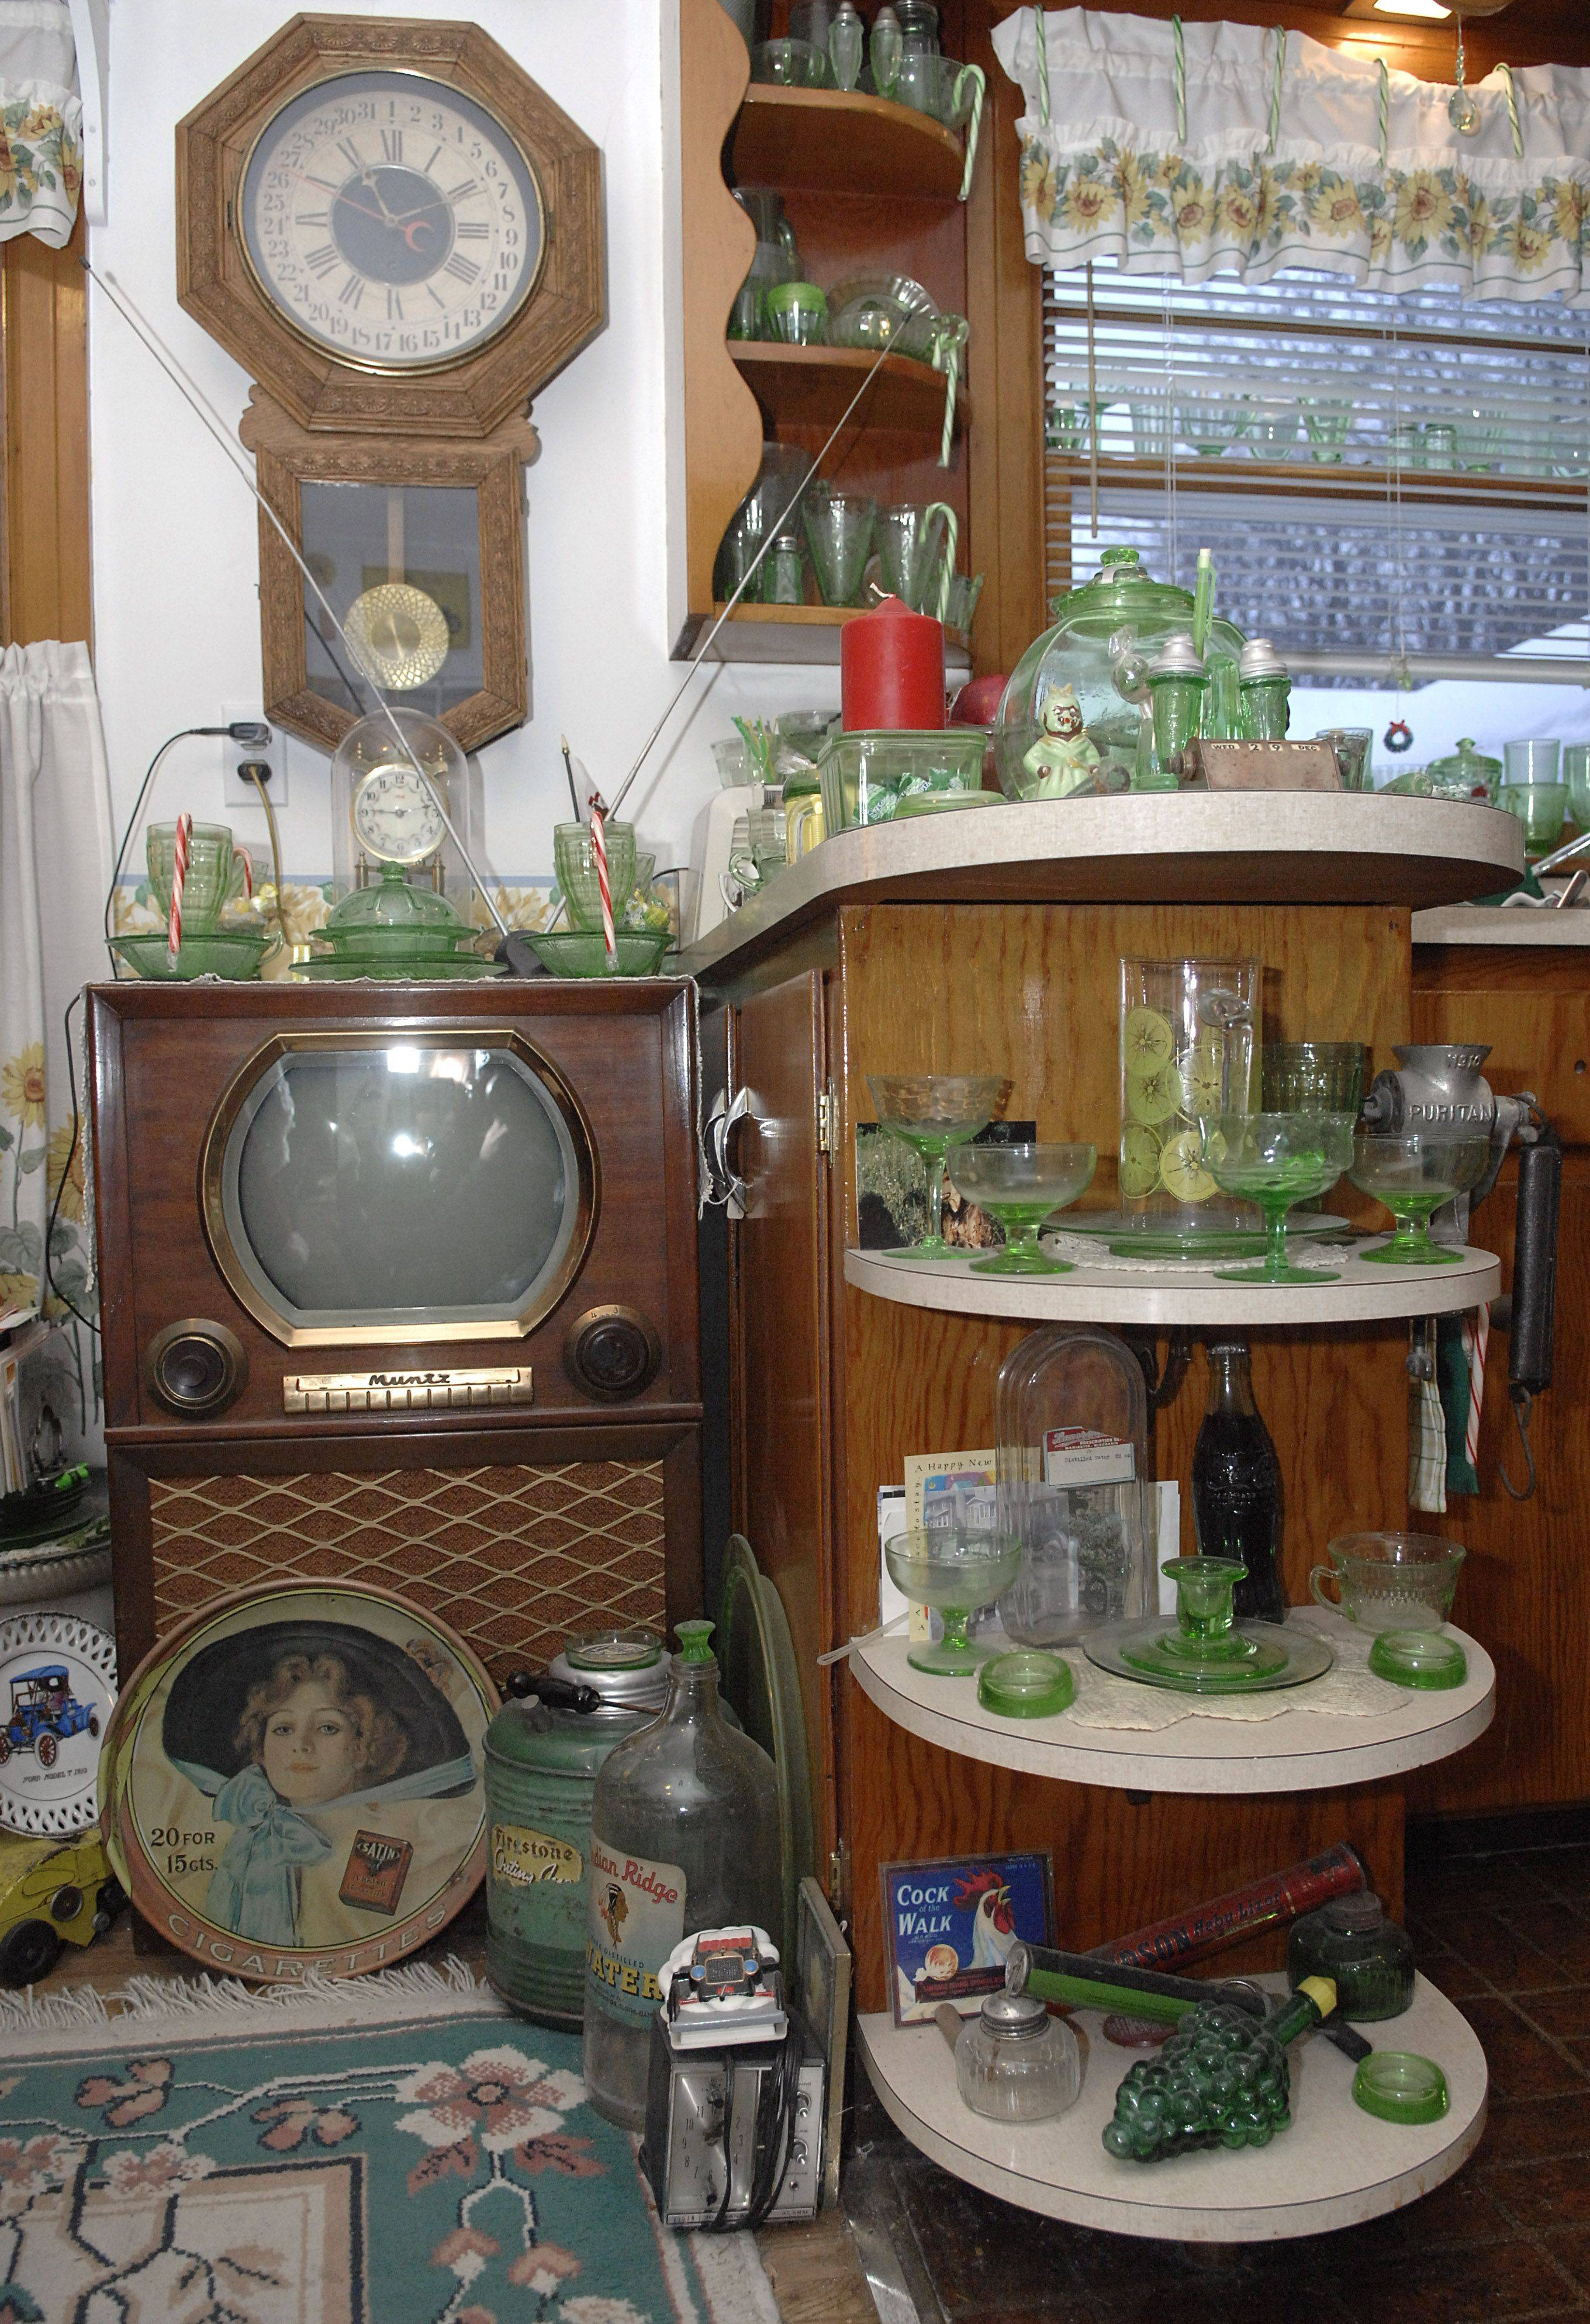 The Elgin home of Thoren is filled with antiques and collectibles. He has been collecting since he was a child, especially green Depression glass and clocks of all sizes.